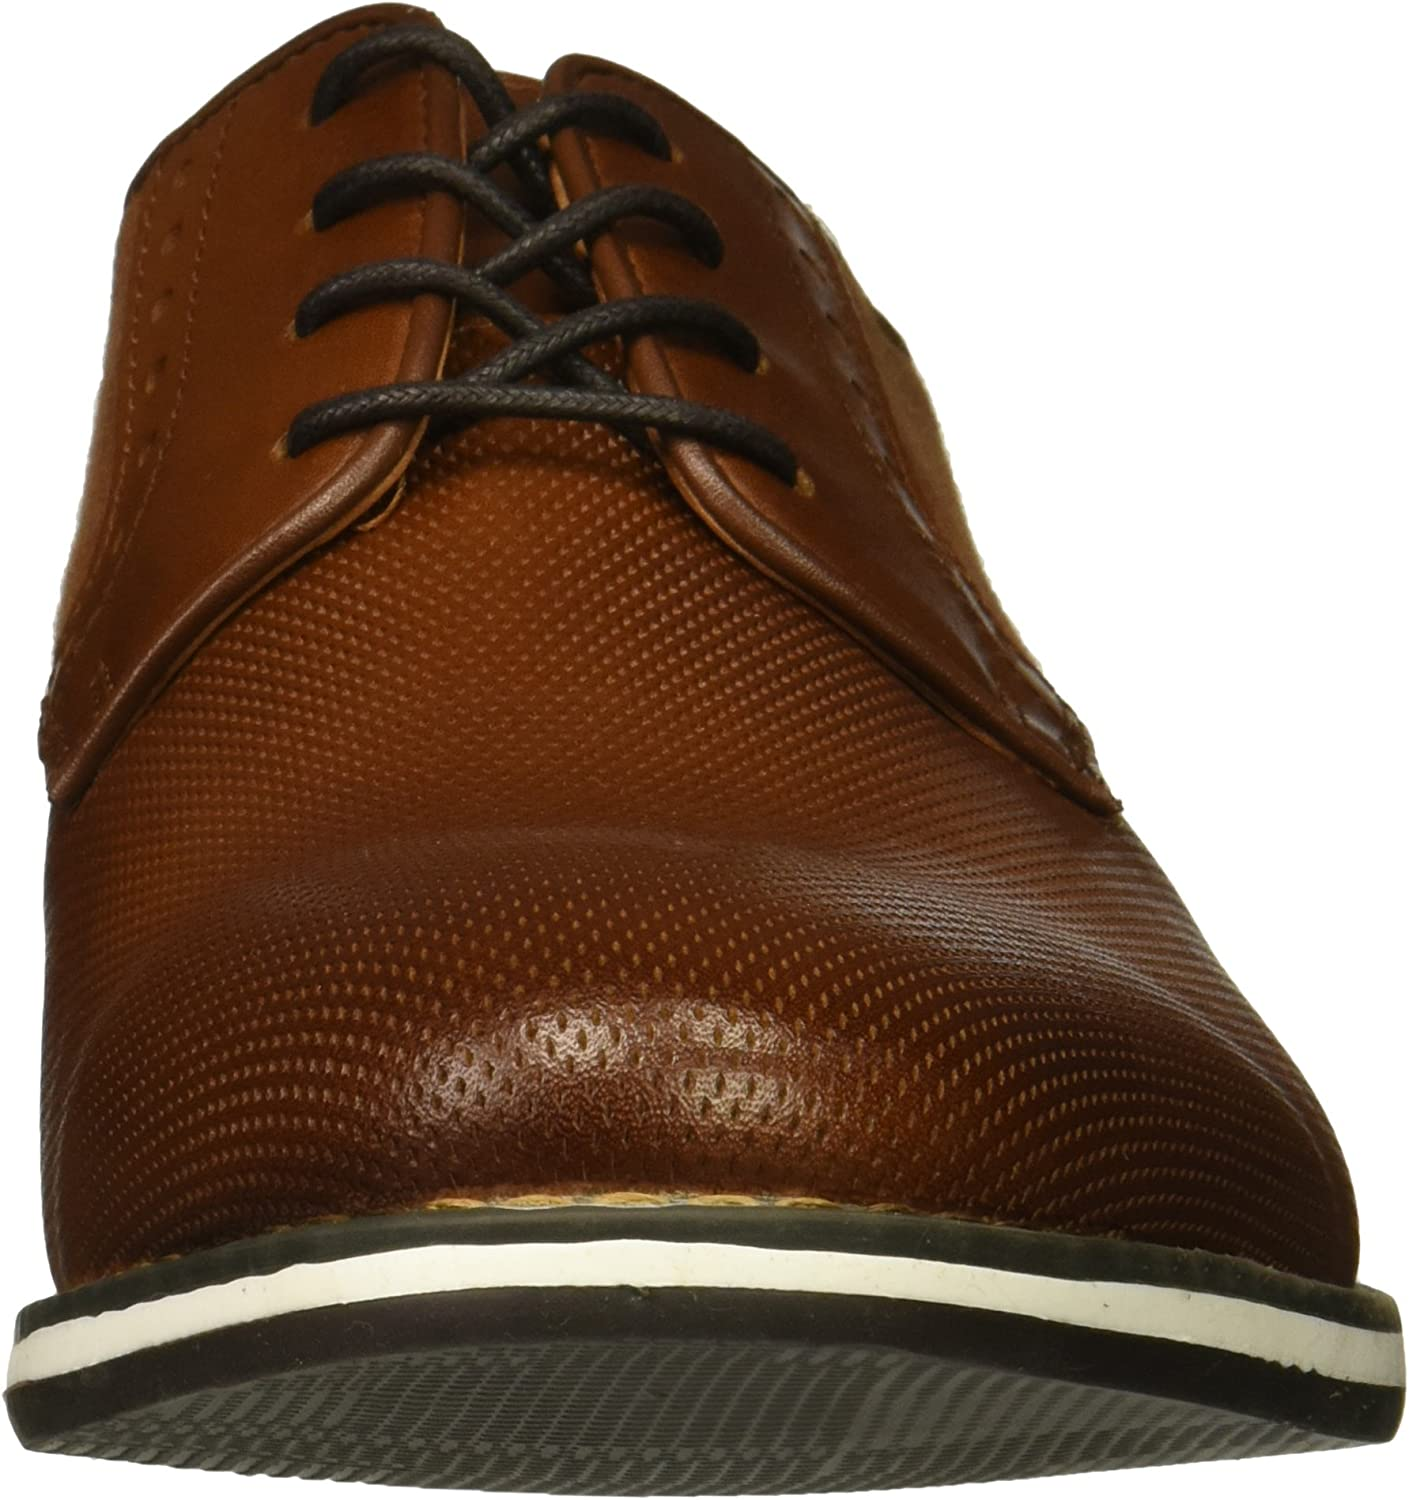 Kenneth Cole REACTION Mens Weiser Lace Up B Oxford